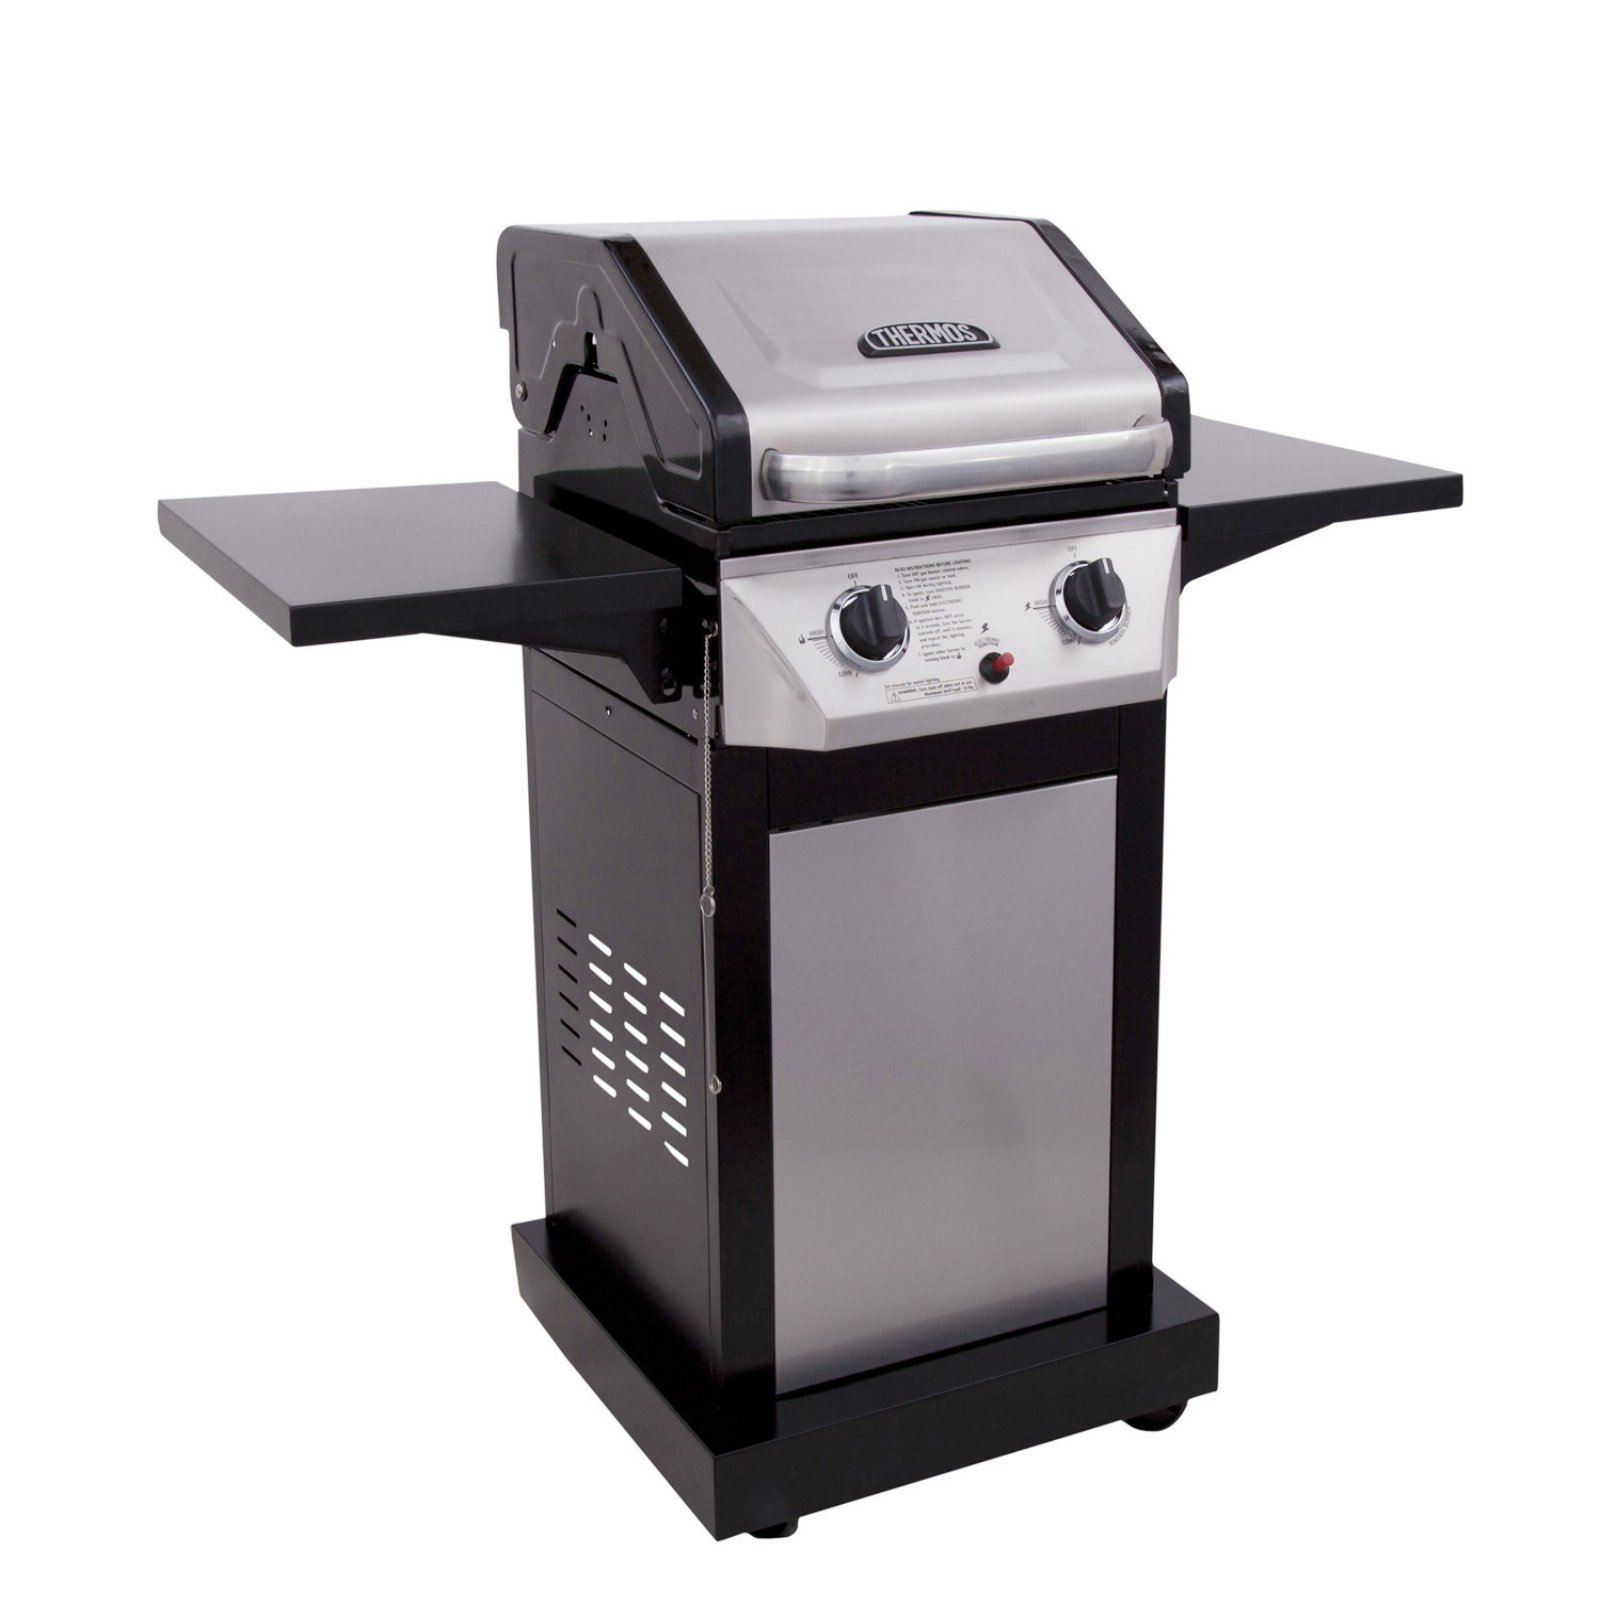 Thermos 300 2 Burner Cabinet Gas Grill by CHARBROIL